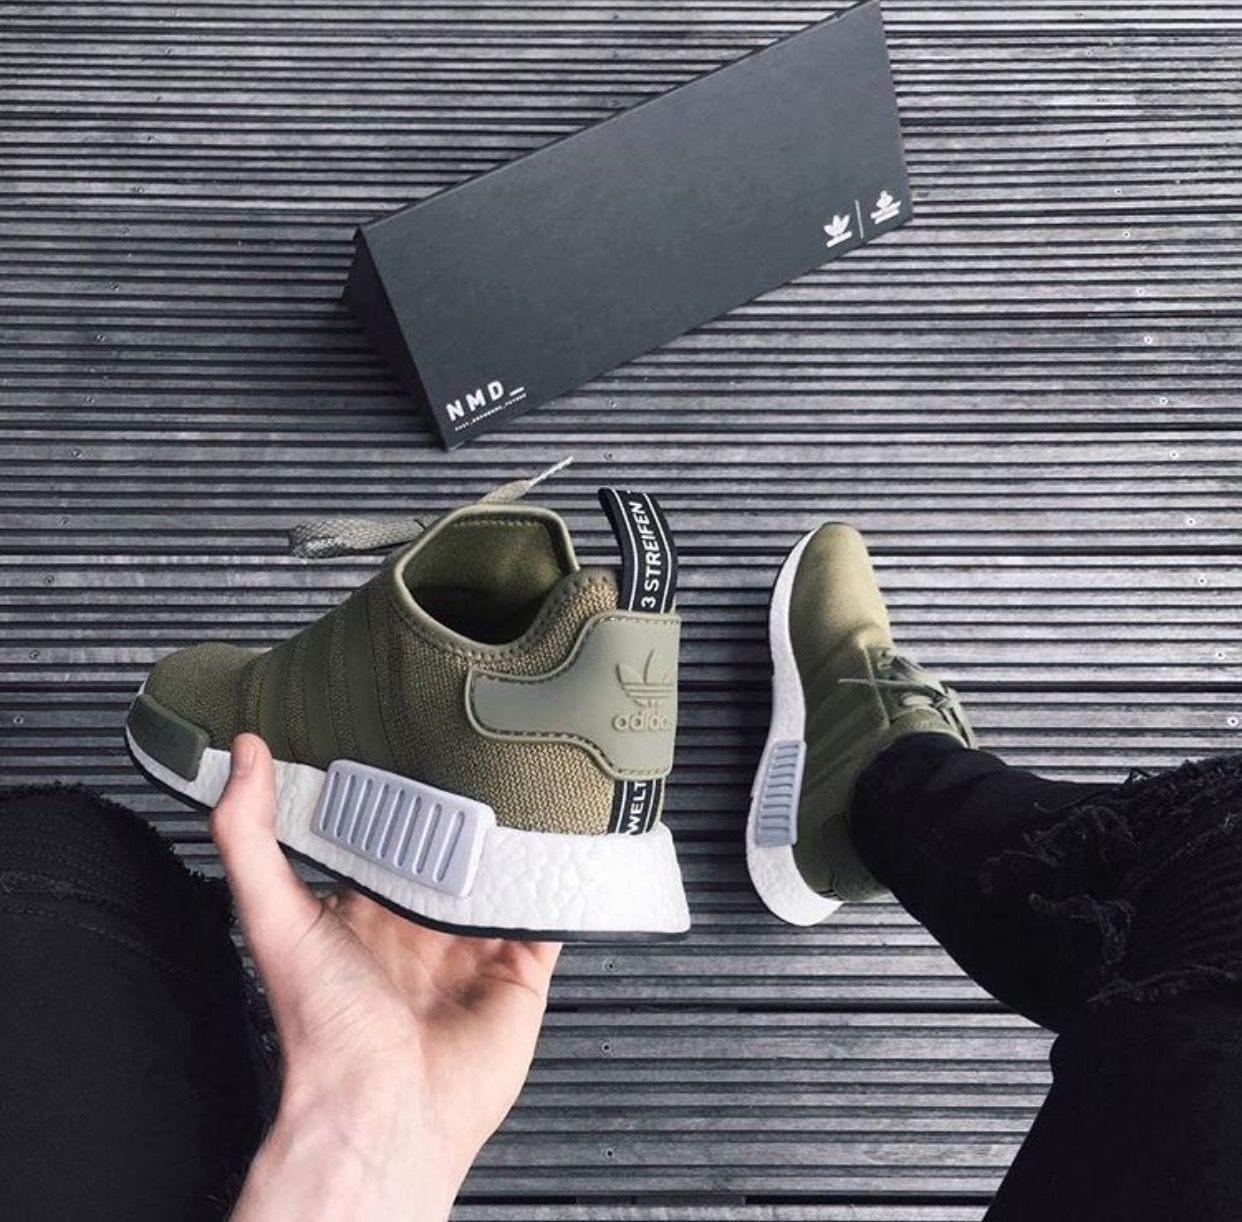 spiaggia coro gioia  adidas NMDs Olive More | Sneakers men fashion, Fashion shoes, Best shoes  for men